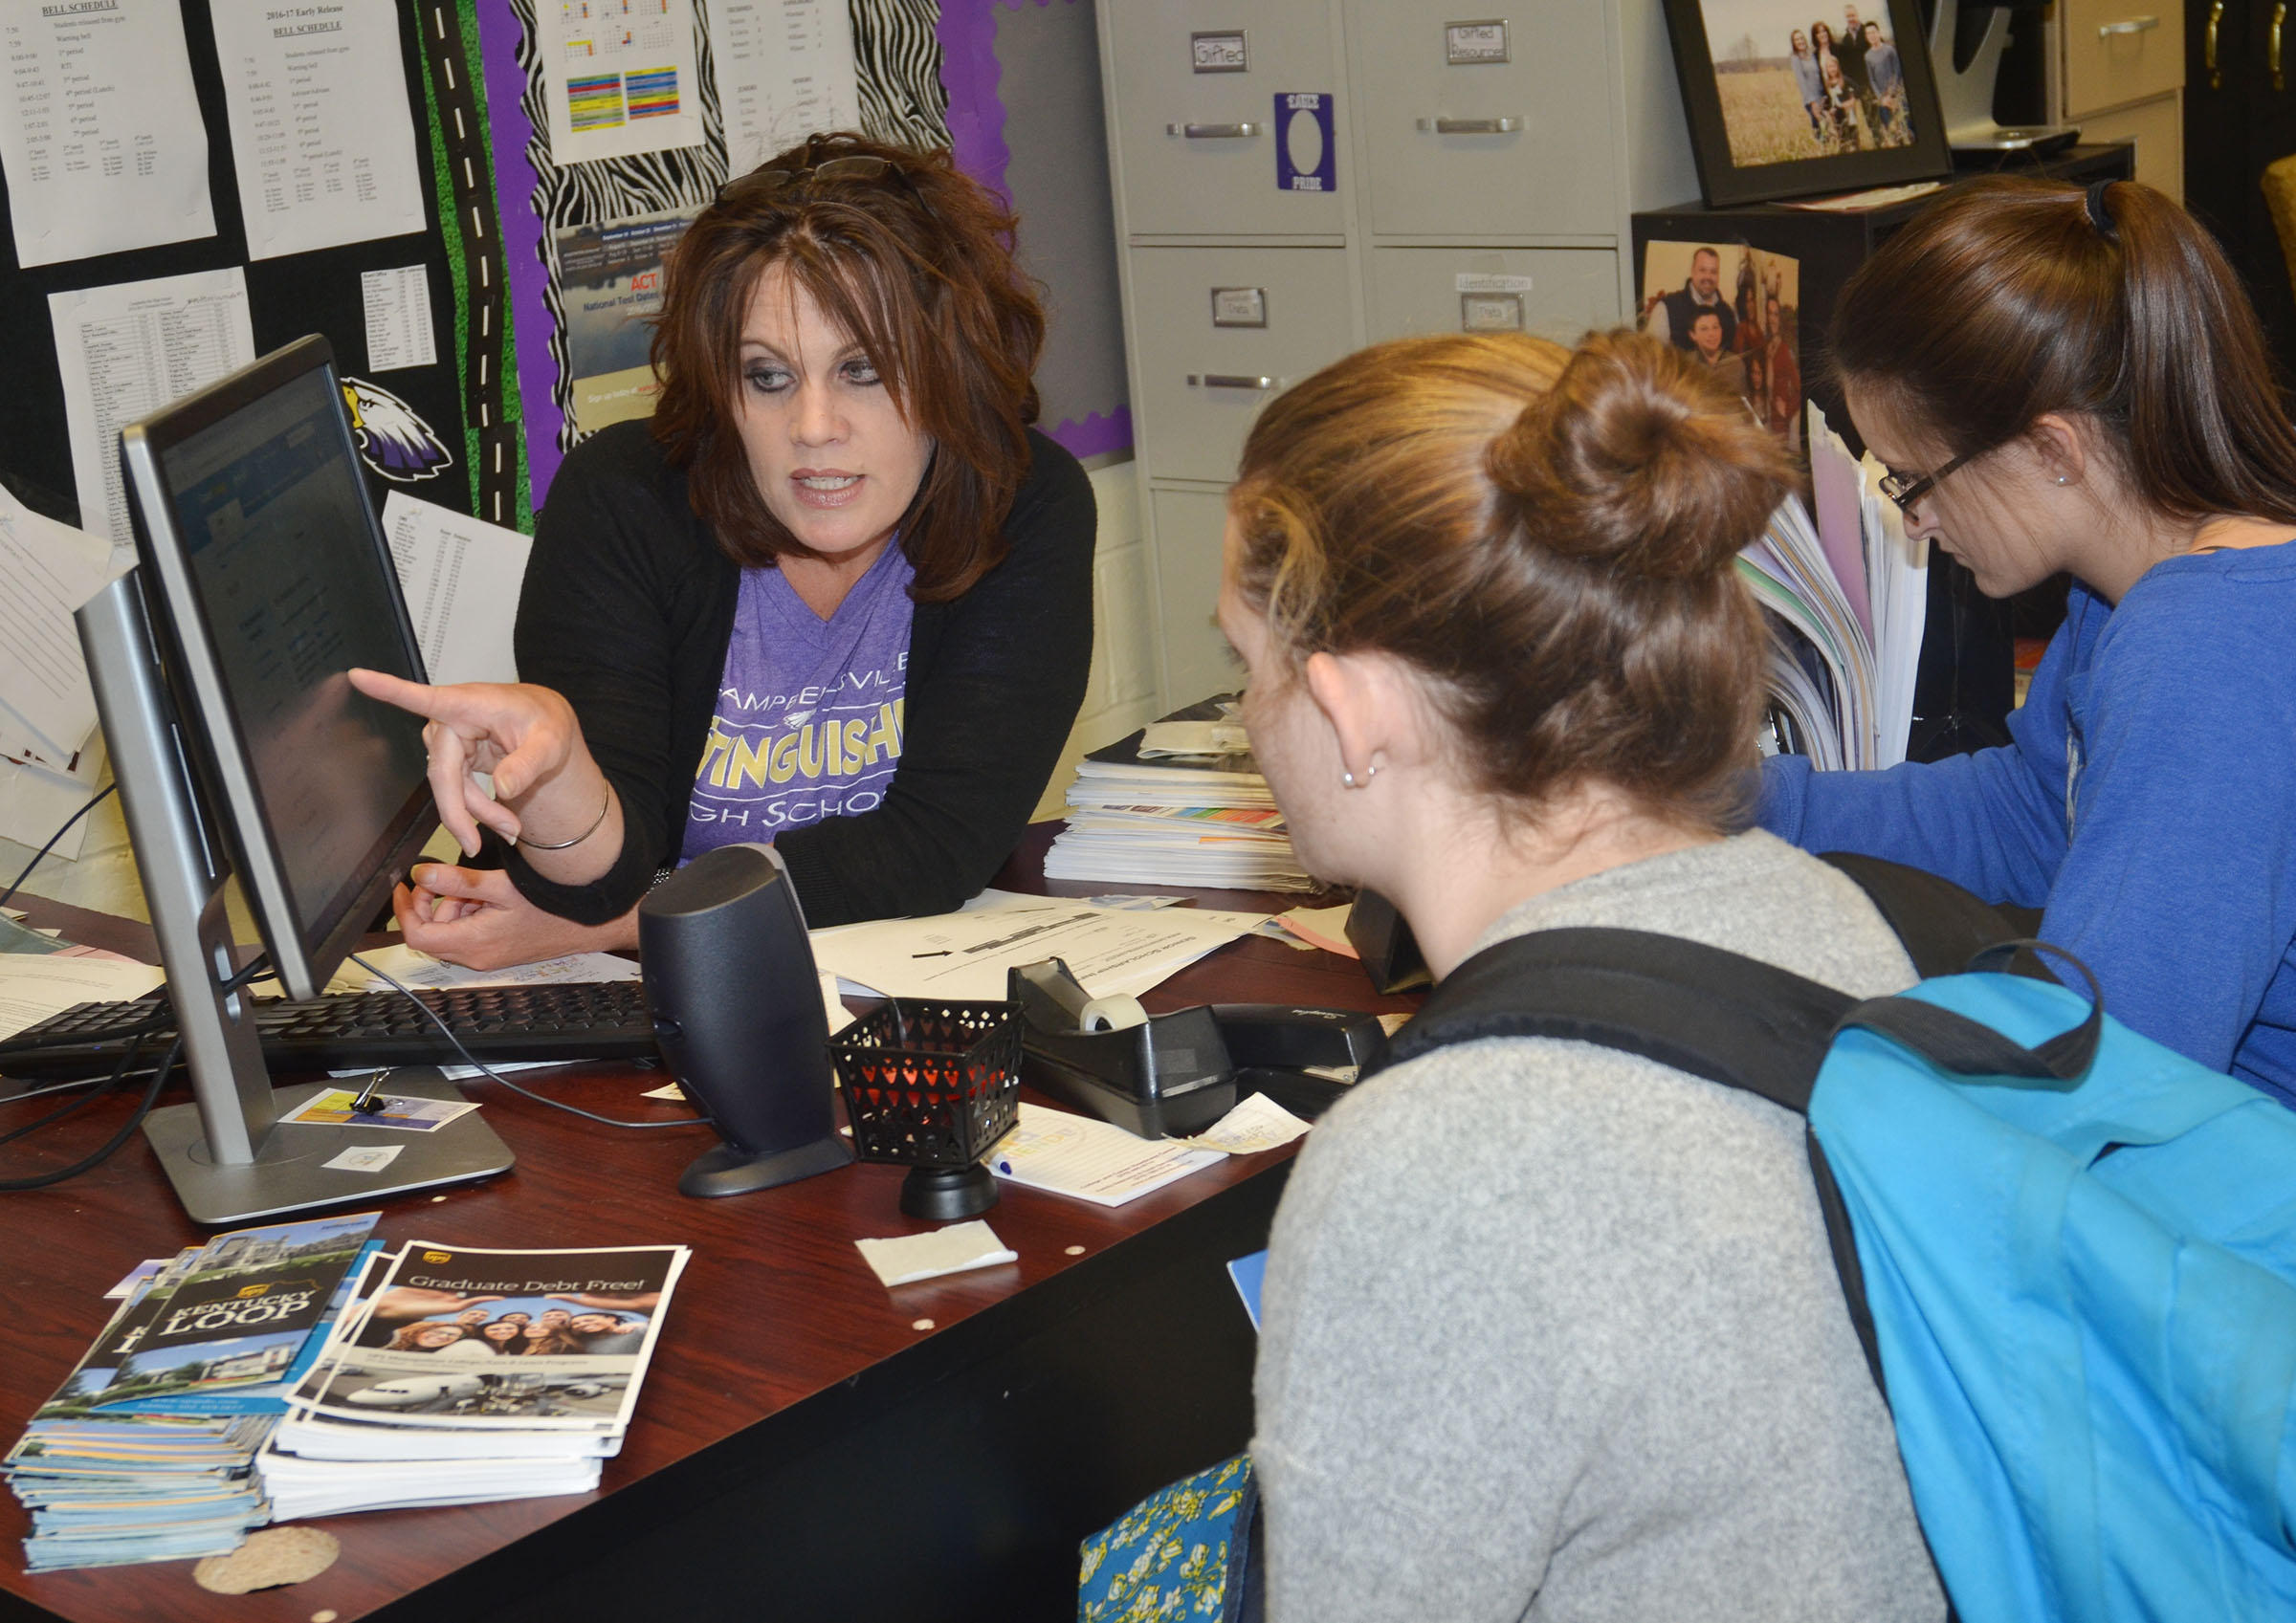 CHS College and Career Readiness Counselor Angie Travis talks to CHS senior Blair Lamb, at left, and junior Kimberly Harden about scholarship application deadlines.